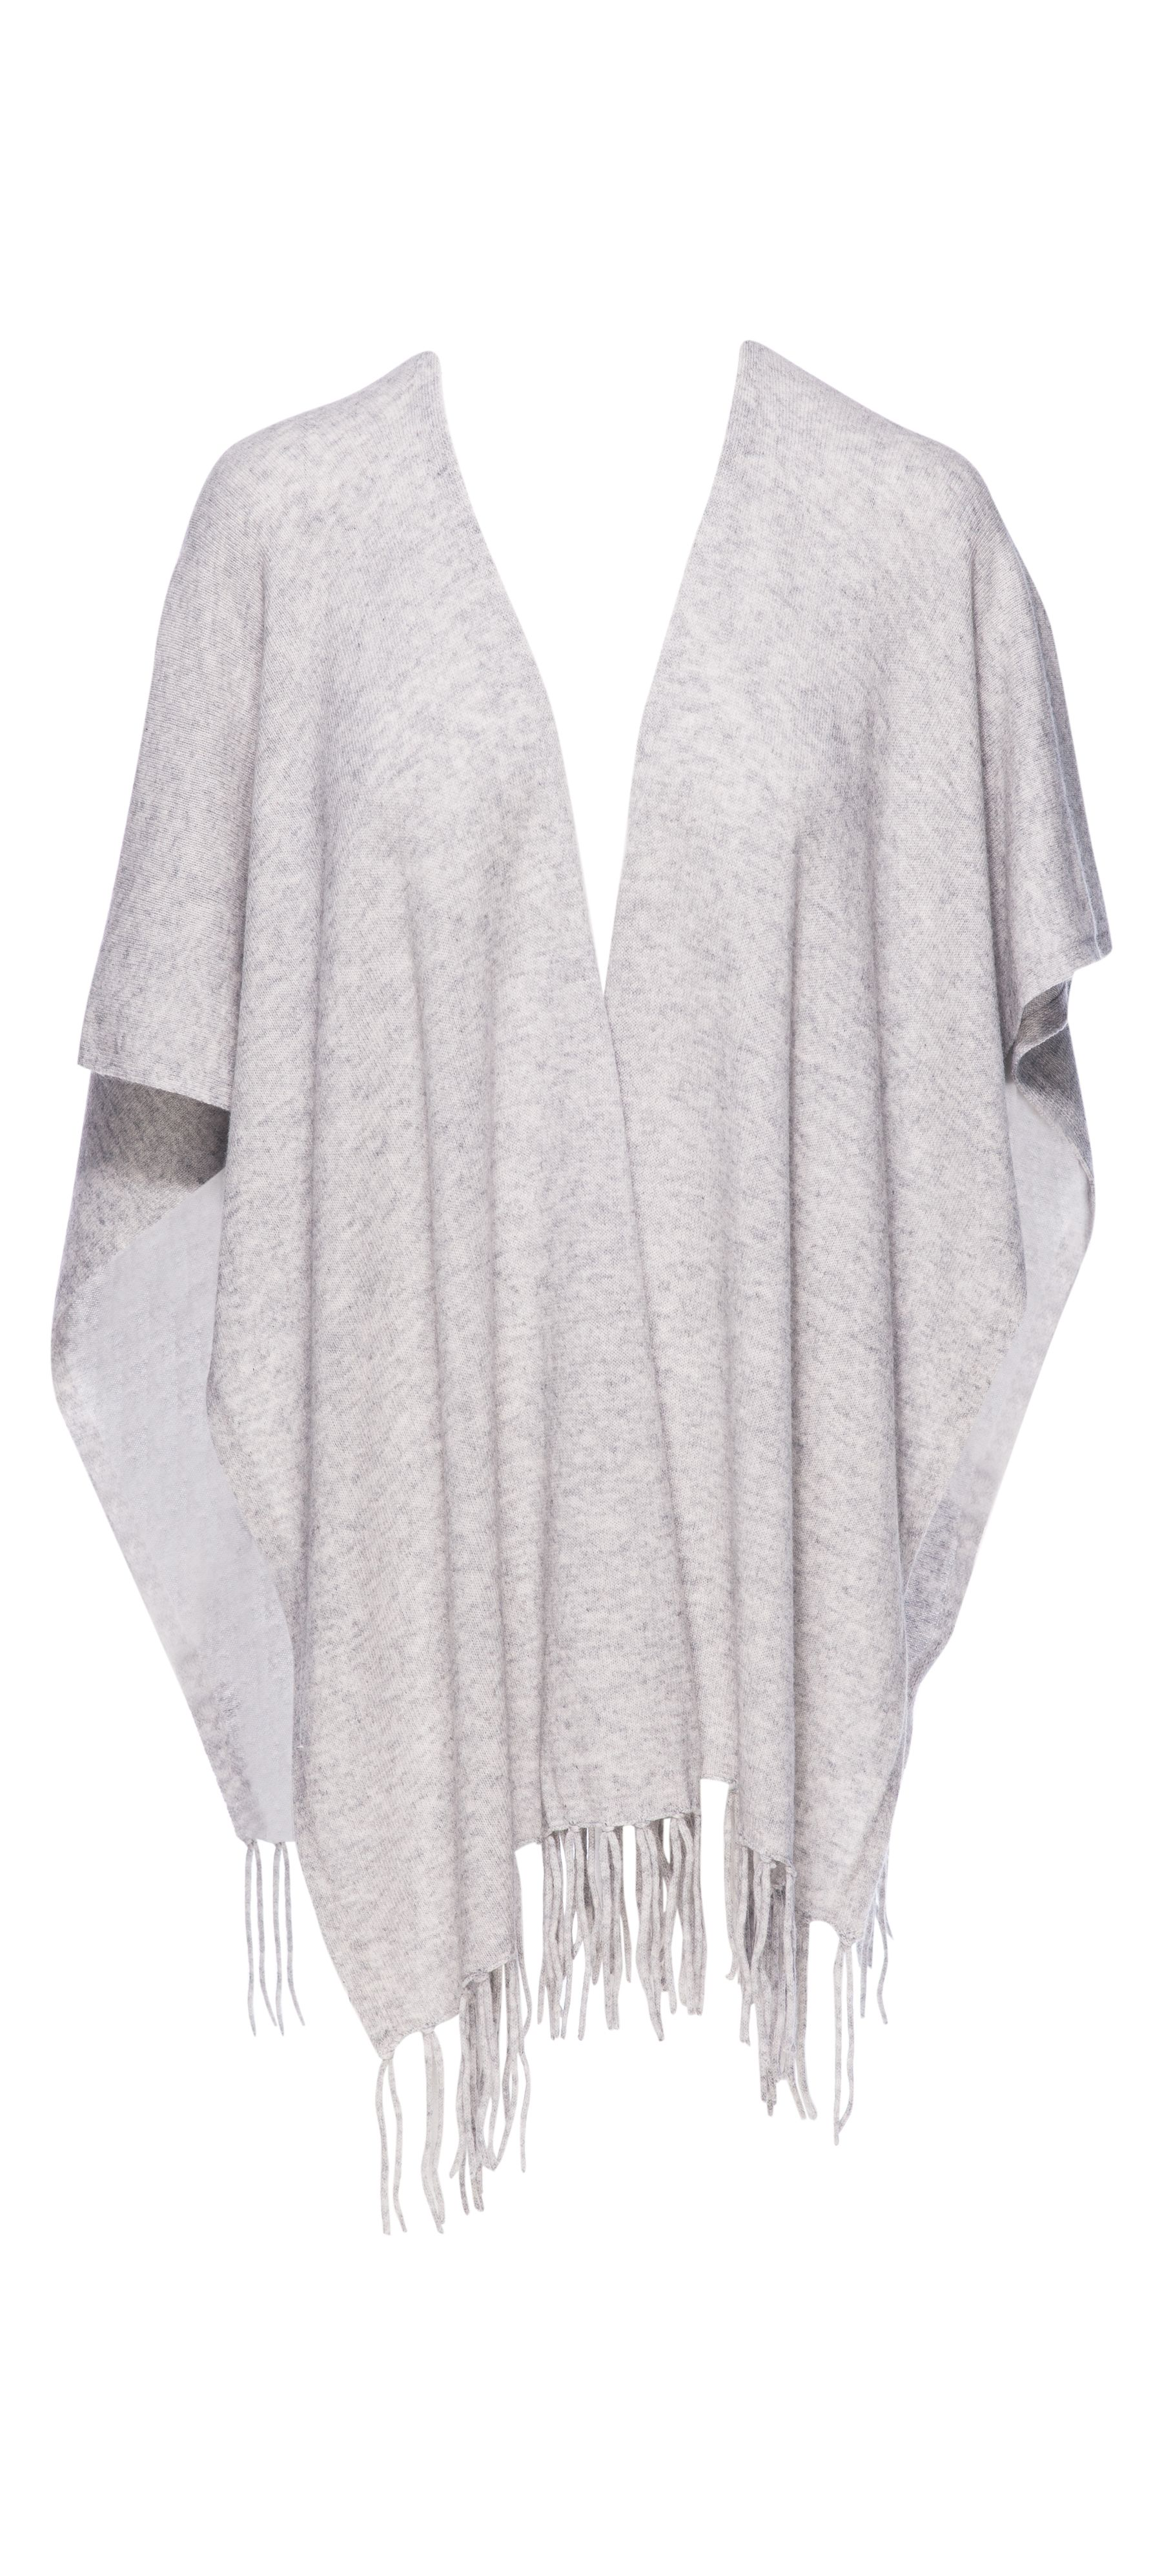 Joie Lucrece Top in Light Heather / Manage Products / Catalog / Magento Admin